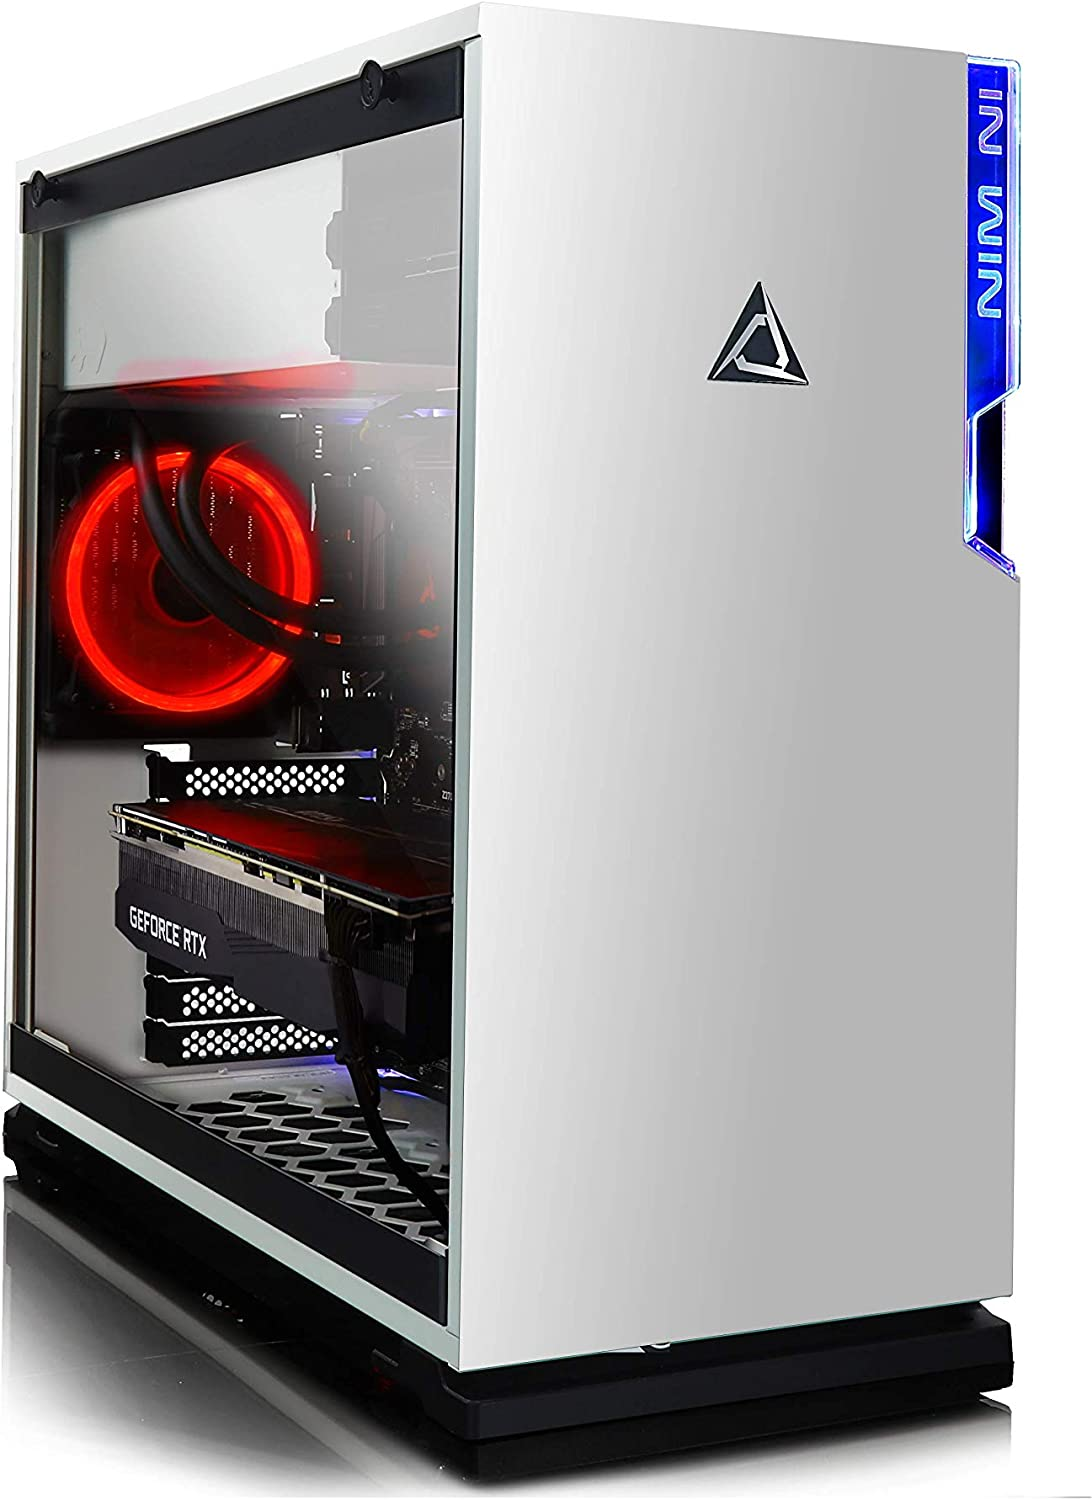 CLX Set Gaming Desktop - Liquid-Cooled Intel Core i7 9700K 3.6GHz 8-Core, 16GB DDR4, GeForce RTX 2060 6GB, 480GB SSD+3TB HDD, WiFi, White Mid-Tower Red Ring Fans, Windows 10 Home